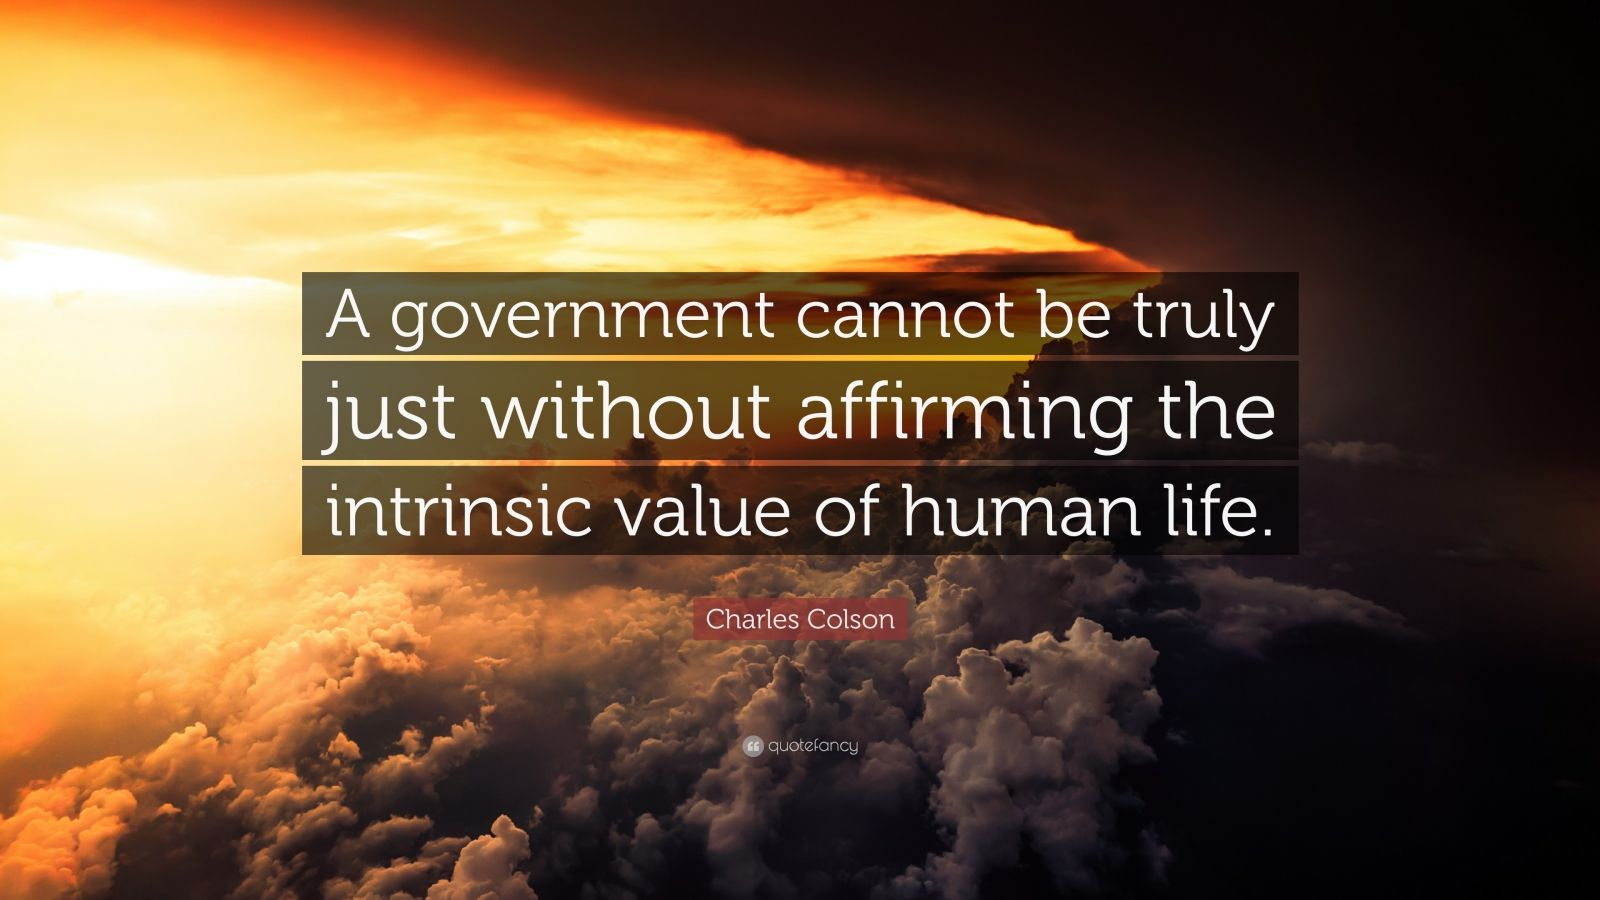 """Charles Colson Quote: """"A government cannot be truly just without affirming the intrinsic value of human life."""""""